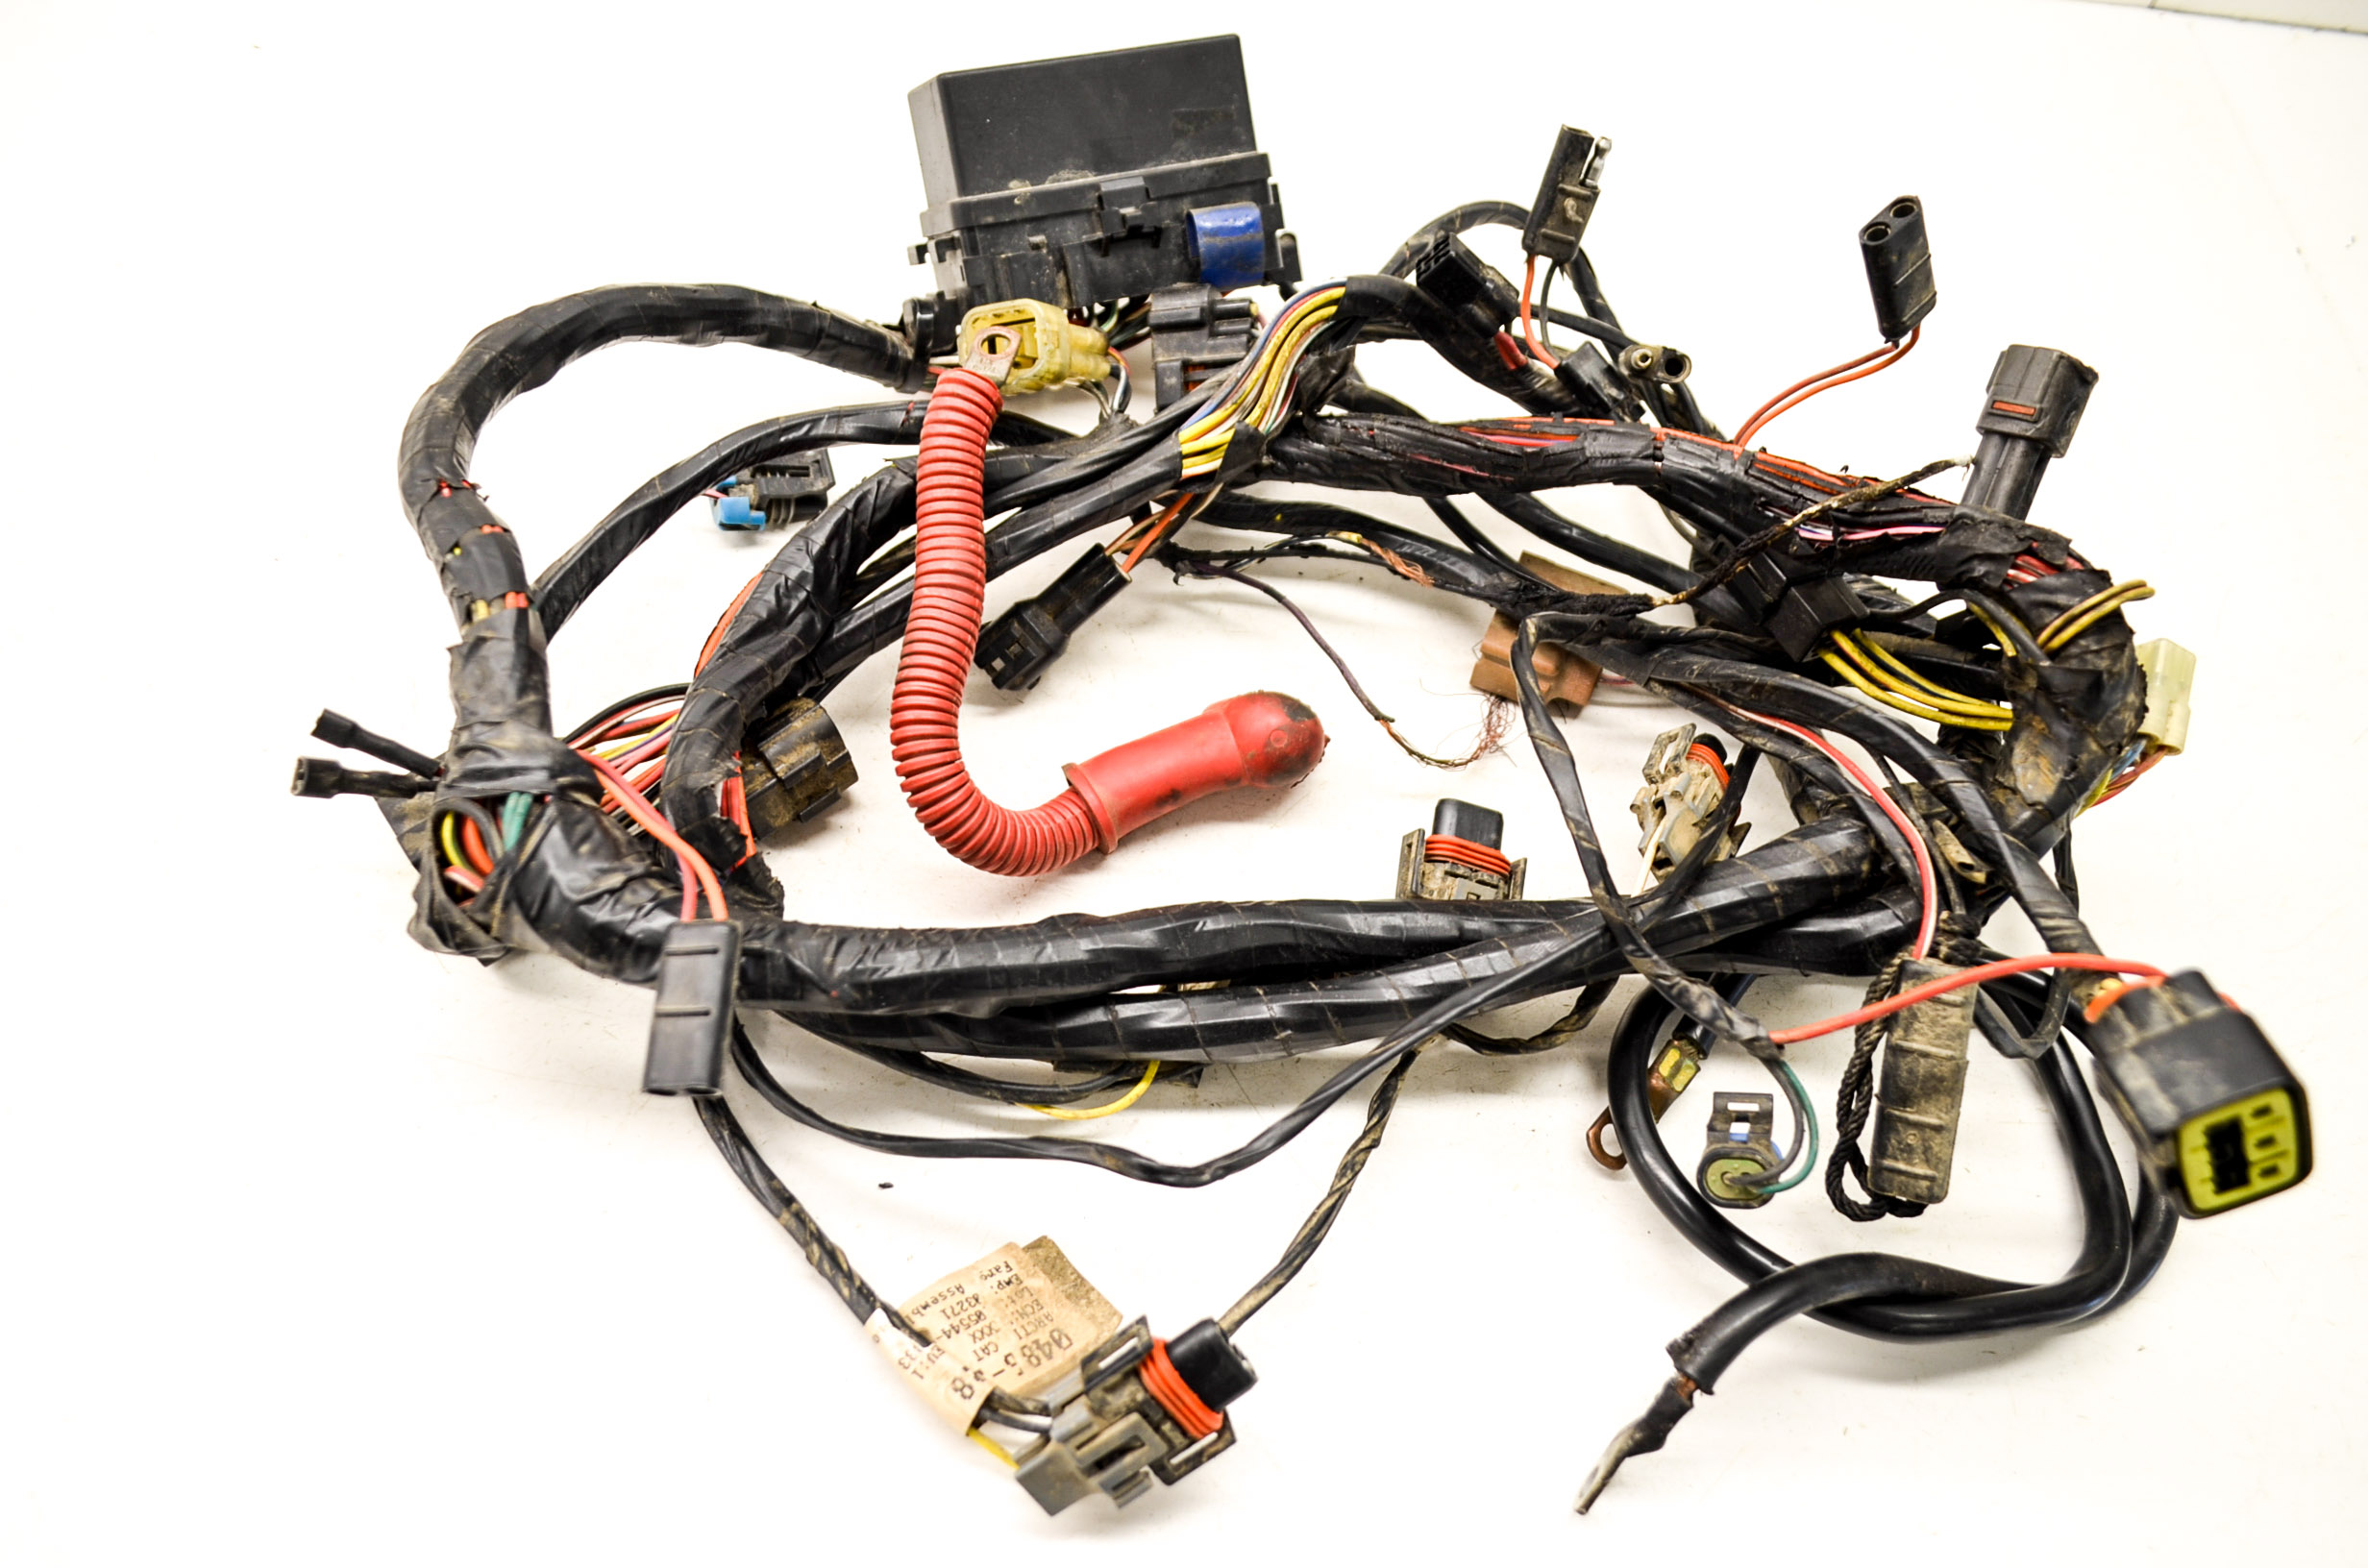 07 Arctic Cat 650 4x4 Tbx H1 Wire Harness Electrical Wiring